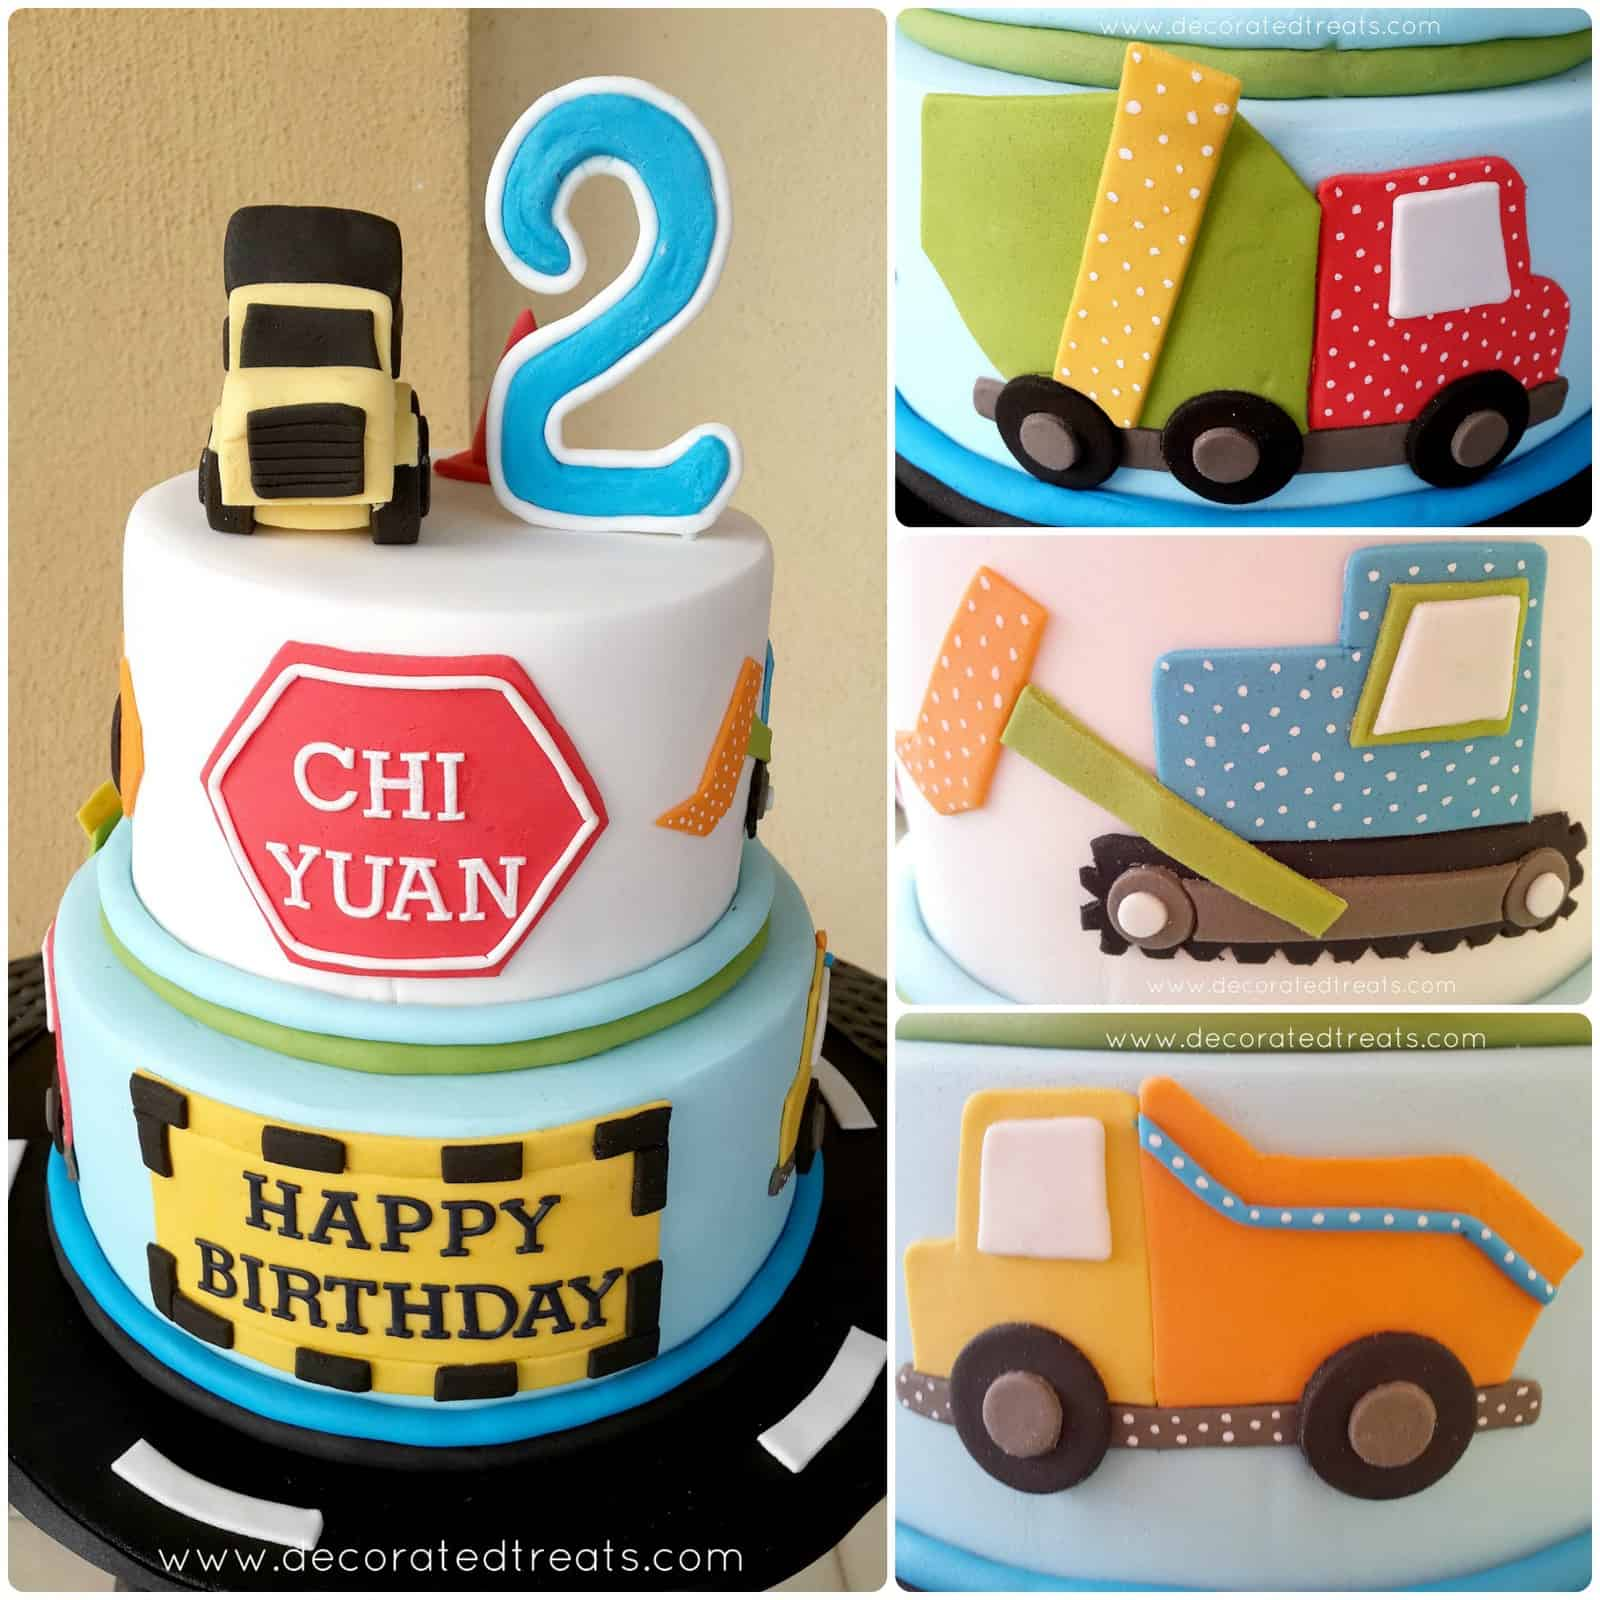 Poster for a 2 tier cake decorated with a truck toppers. The sides of the cake is decorated with 2D designs of various types of trucks